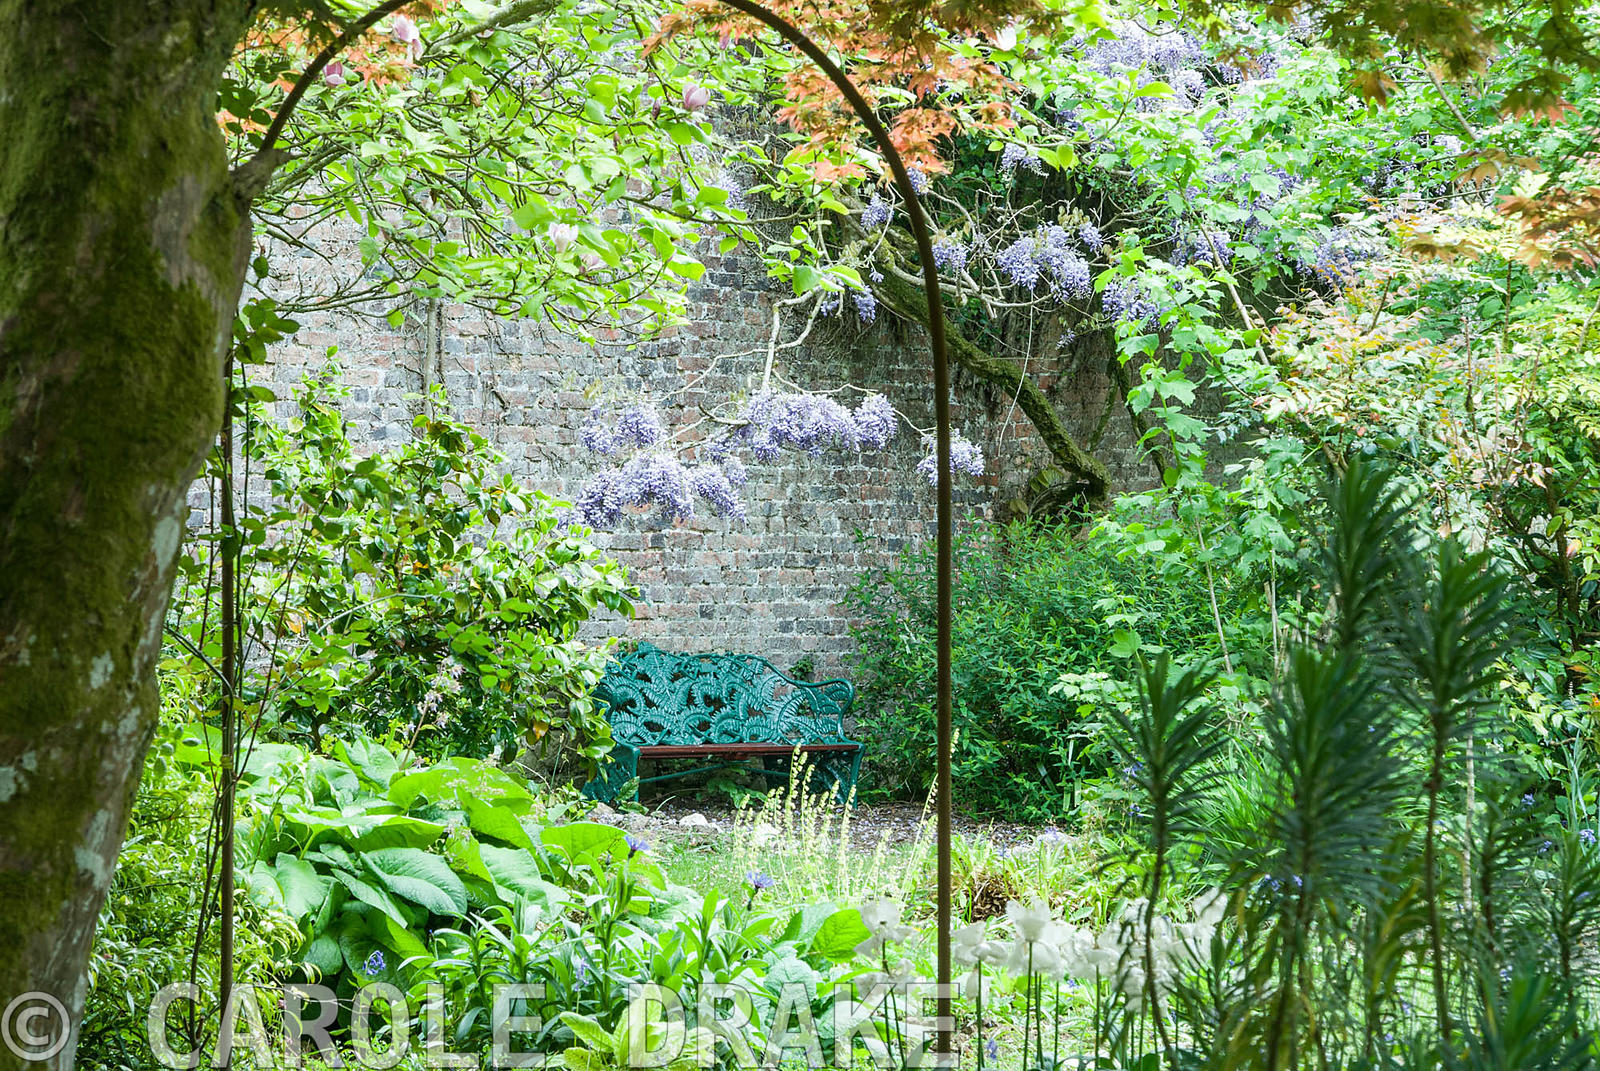 Gingery acer and purple wisteria frame a fern seat in the Flower Garden. Enys Gardens, St Gluvias, Penryn, Cornwall, UK